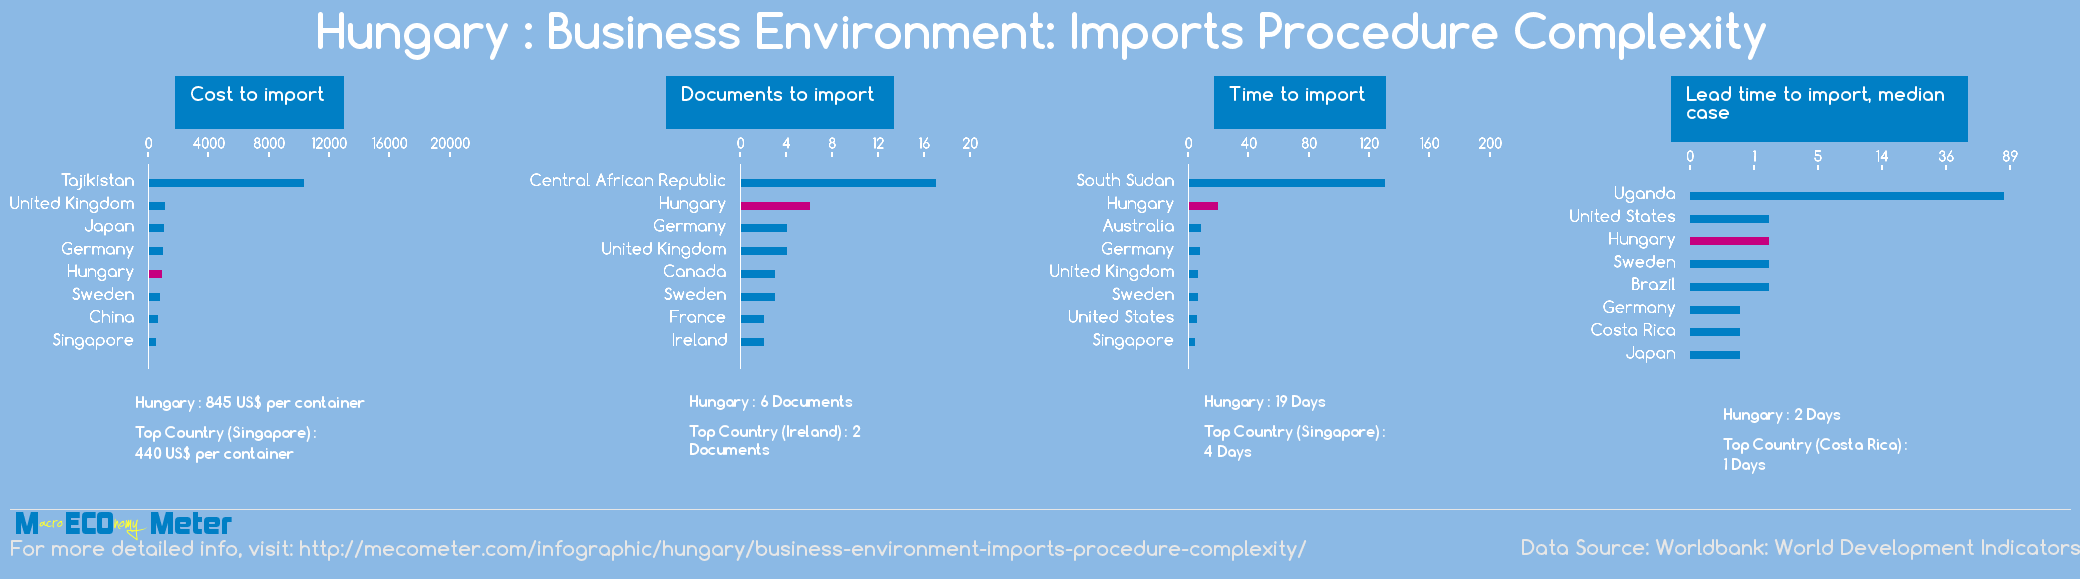 Hungary : Business Environment: Imports Procedure Complexity